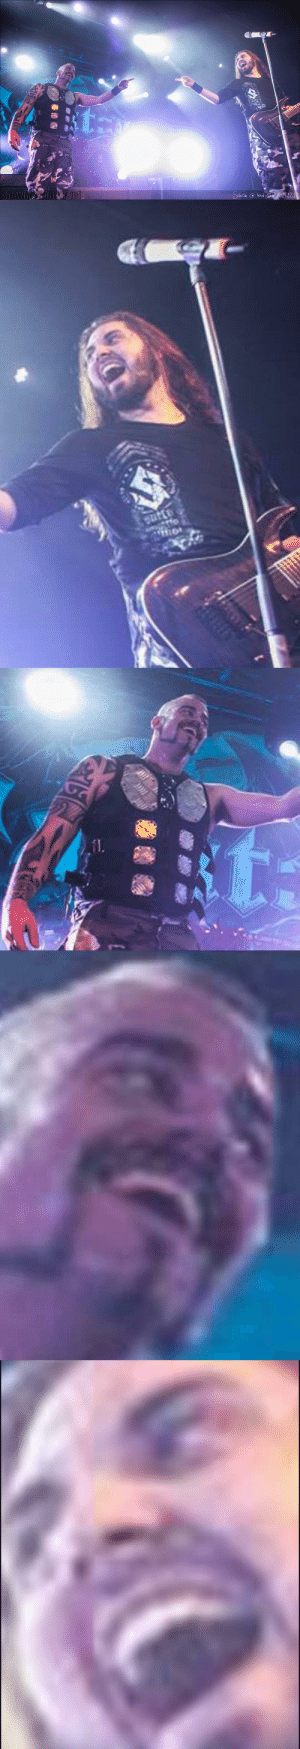 maybe-sabaton-things:  When you tell a tumblr joke in public and someone understands and laughs and you make a connection like : ta  utte  murfn  Showe.ouretal  Sabatn Had Cl 2014.12.1   utte maybe-sabaton-things:  When you tell a tumblr joke in public and someone understands and laughs and you make a connection like